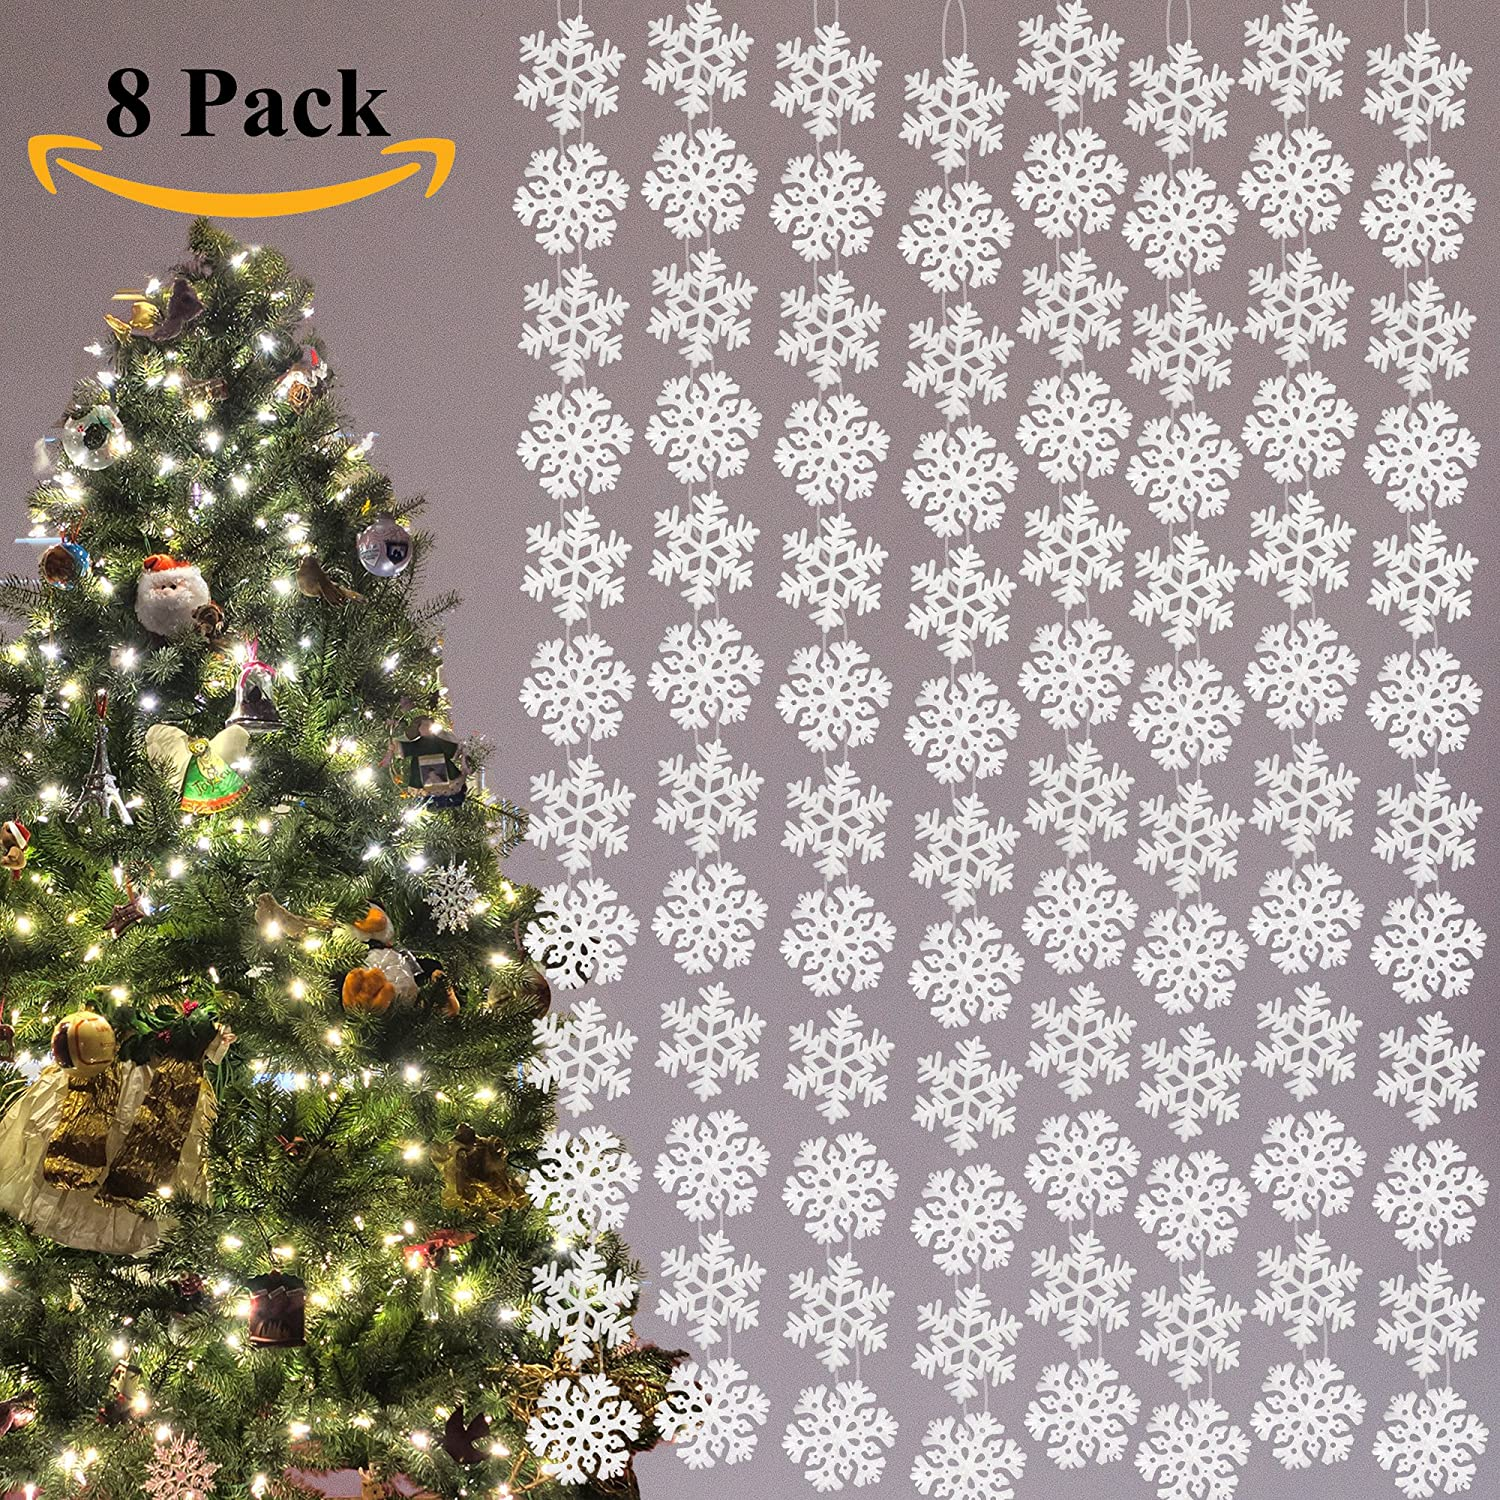 Amazon.com: Joiedomi 8 Pack String Snowflake Christmas Party Winter ...